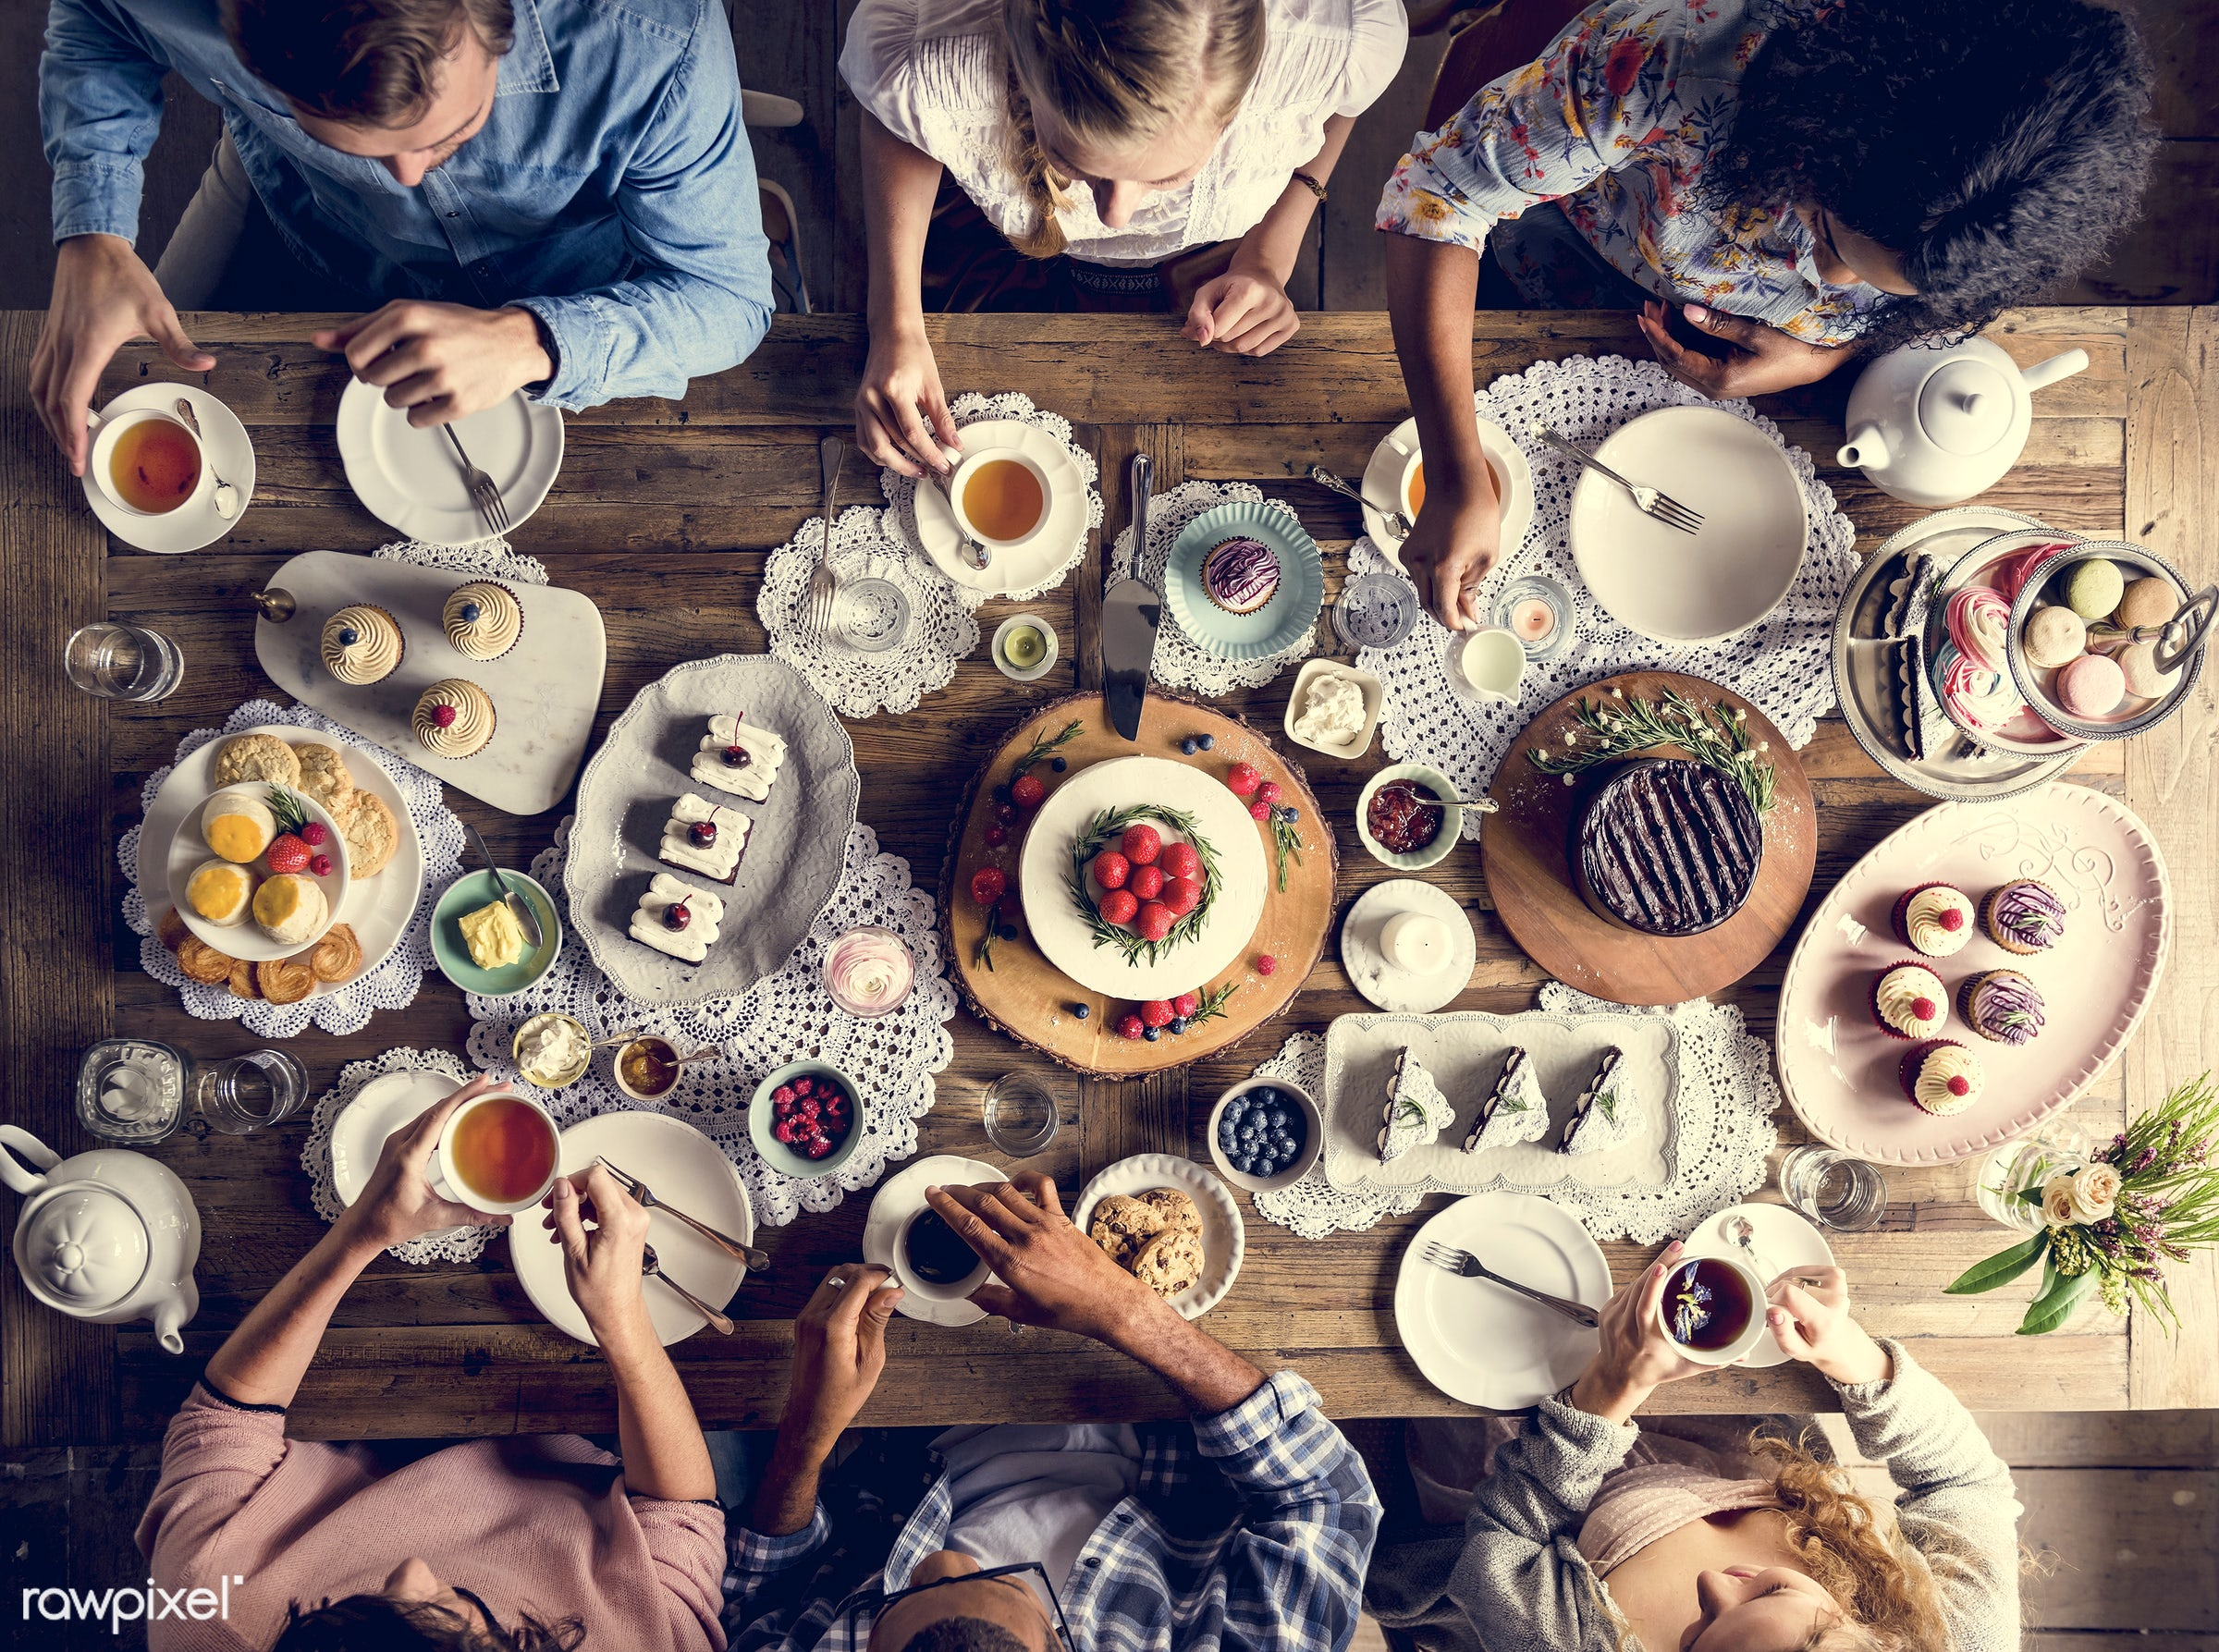 dish, person, recipe, party, tea, people, together, tea party, friends, bakery, frosting, woman, event, gather, friendship,...